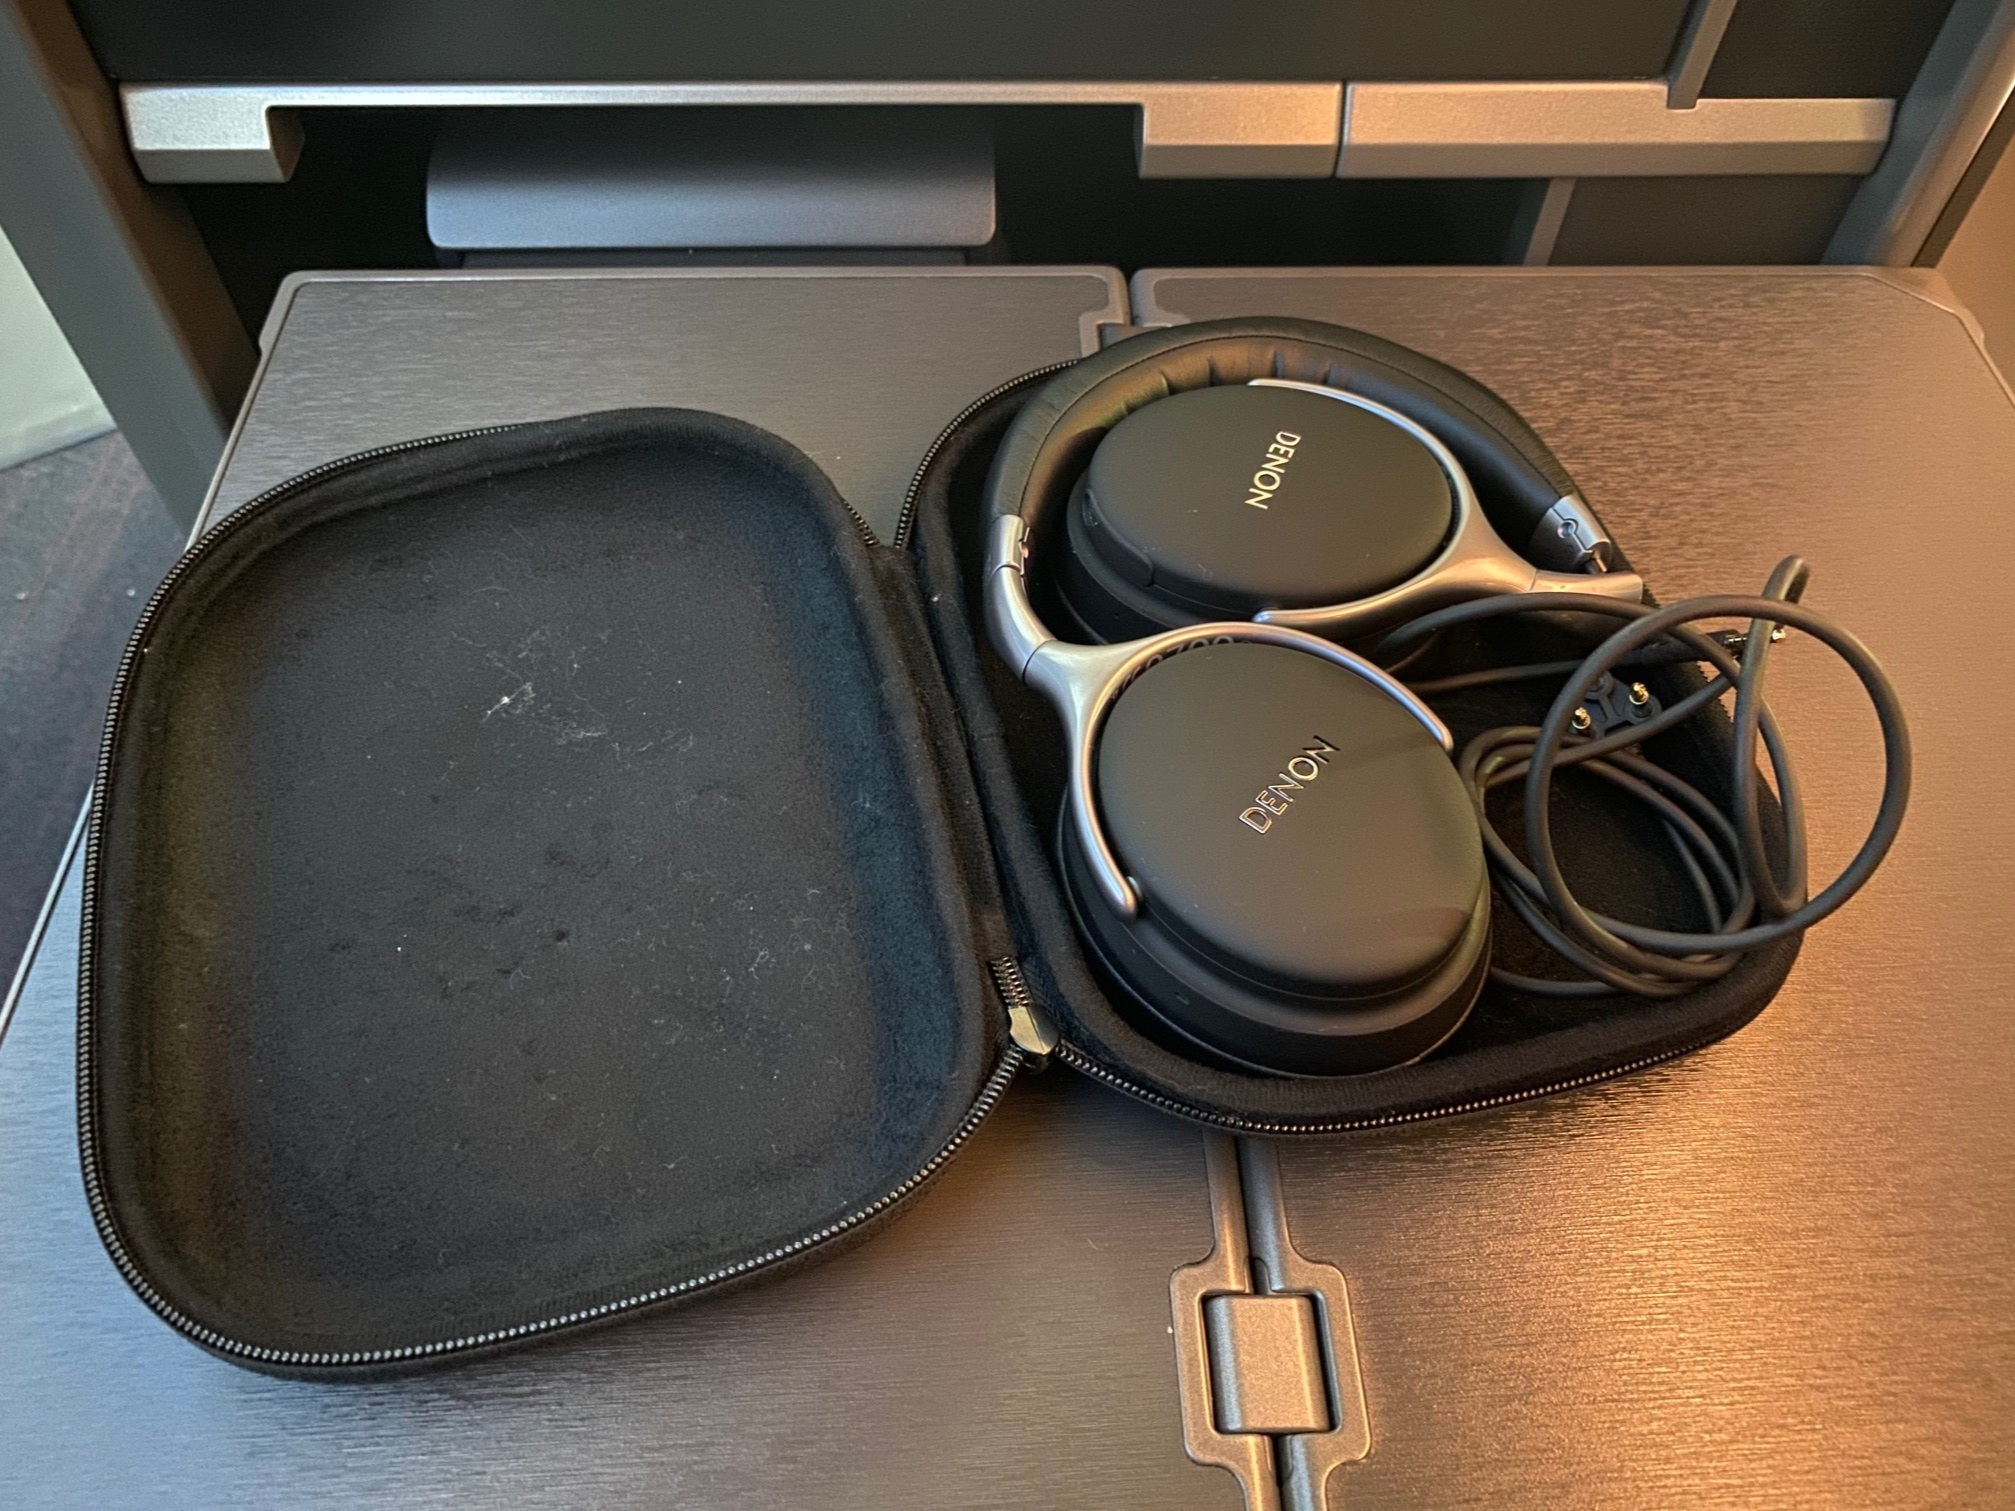 Turkish Airlines 787-9 Business Class Noise Cancelling Headphones